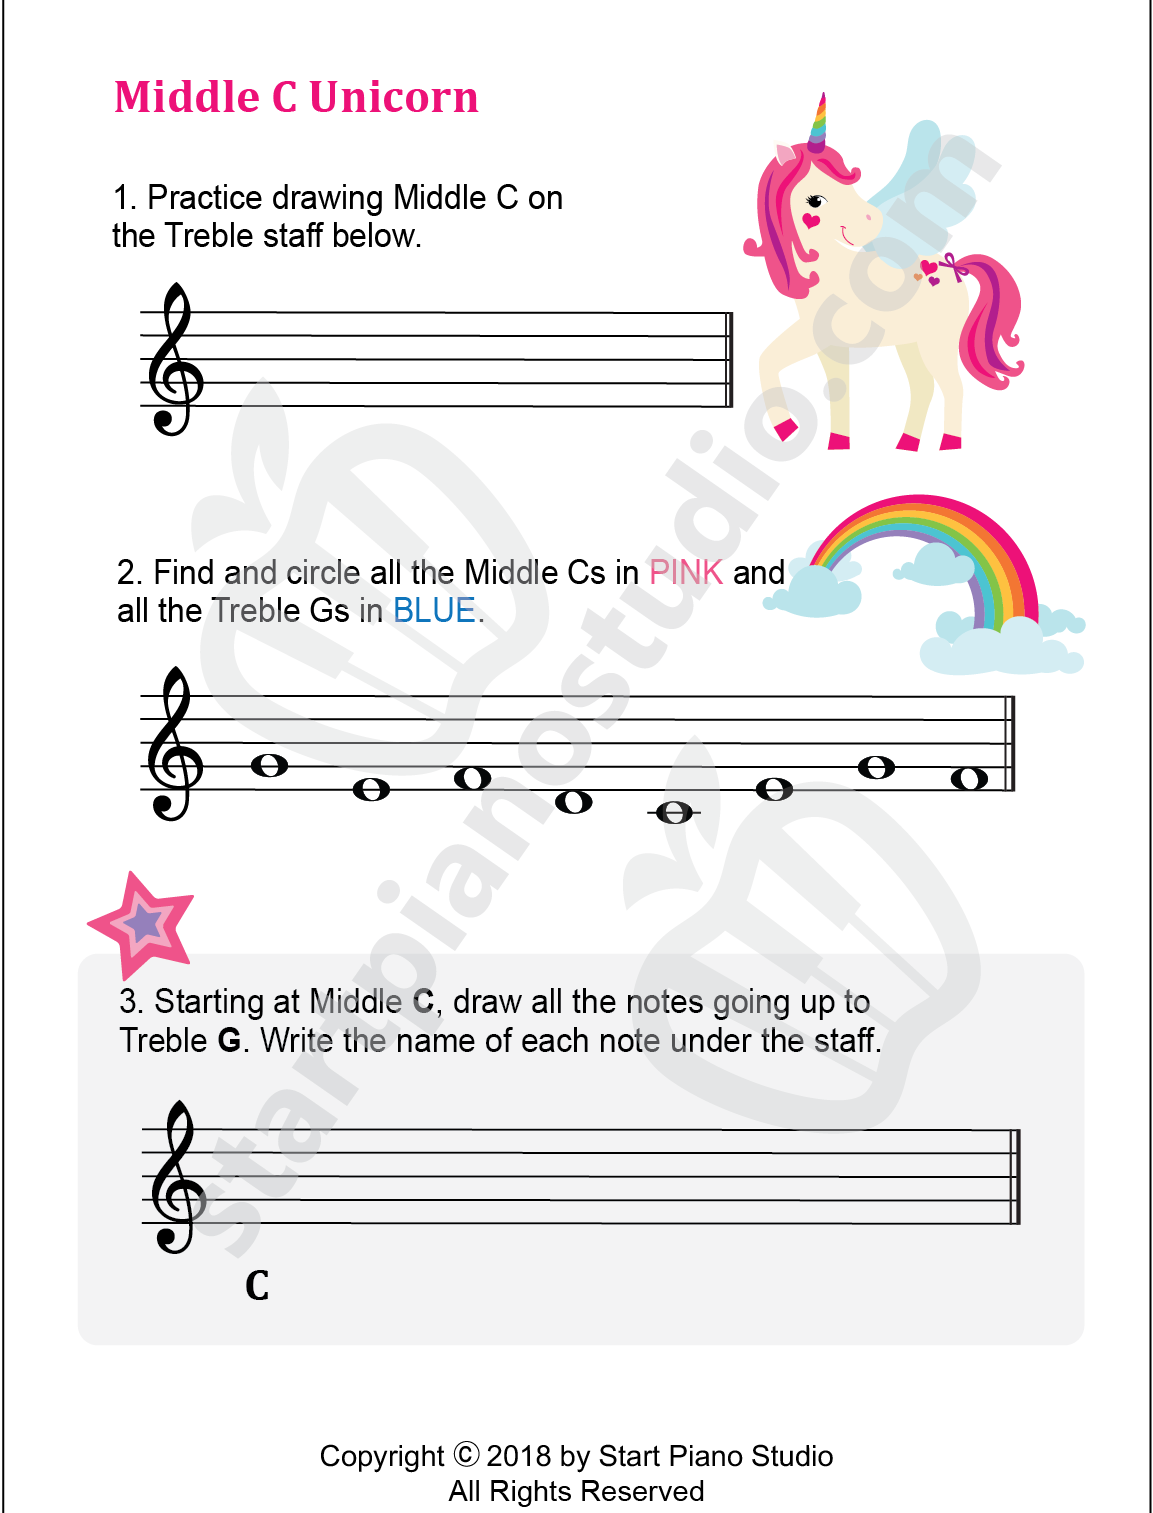 Middle C Unicorn Printable